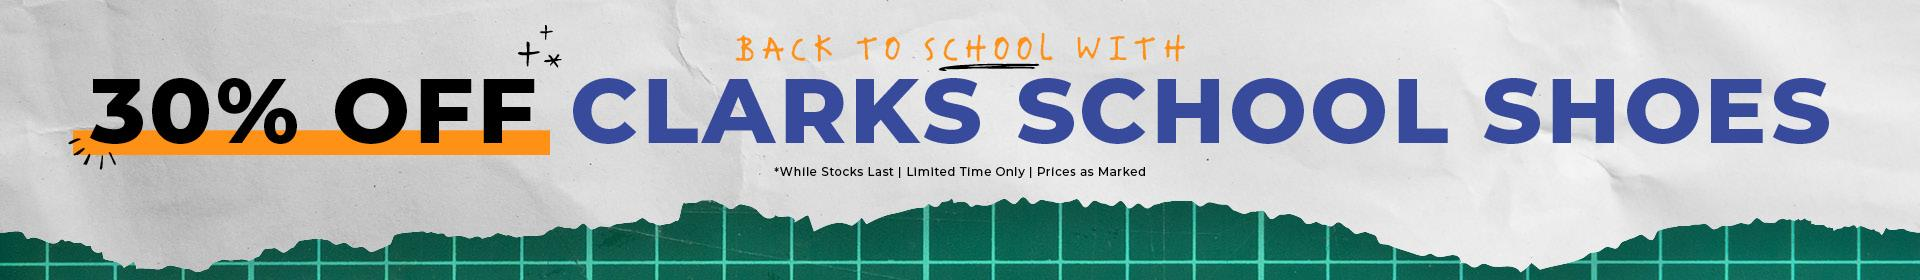 Shop 30% Off Clarks School Shoes for a Limited Time Only